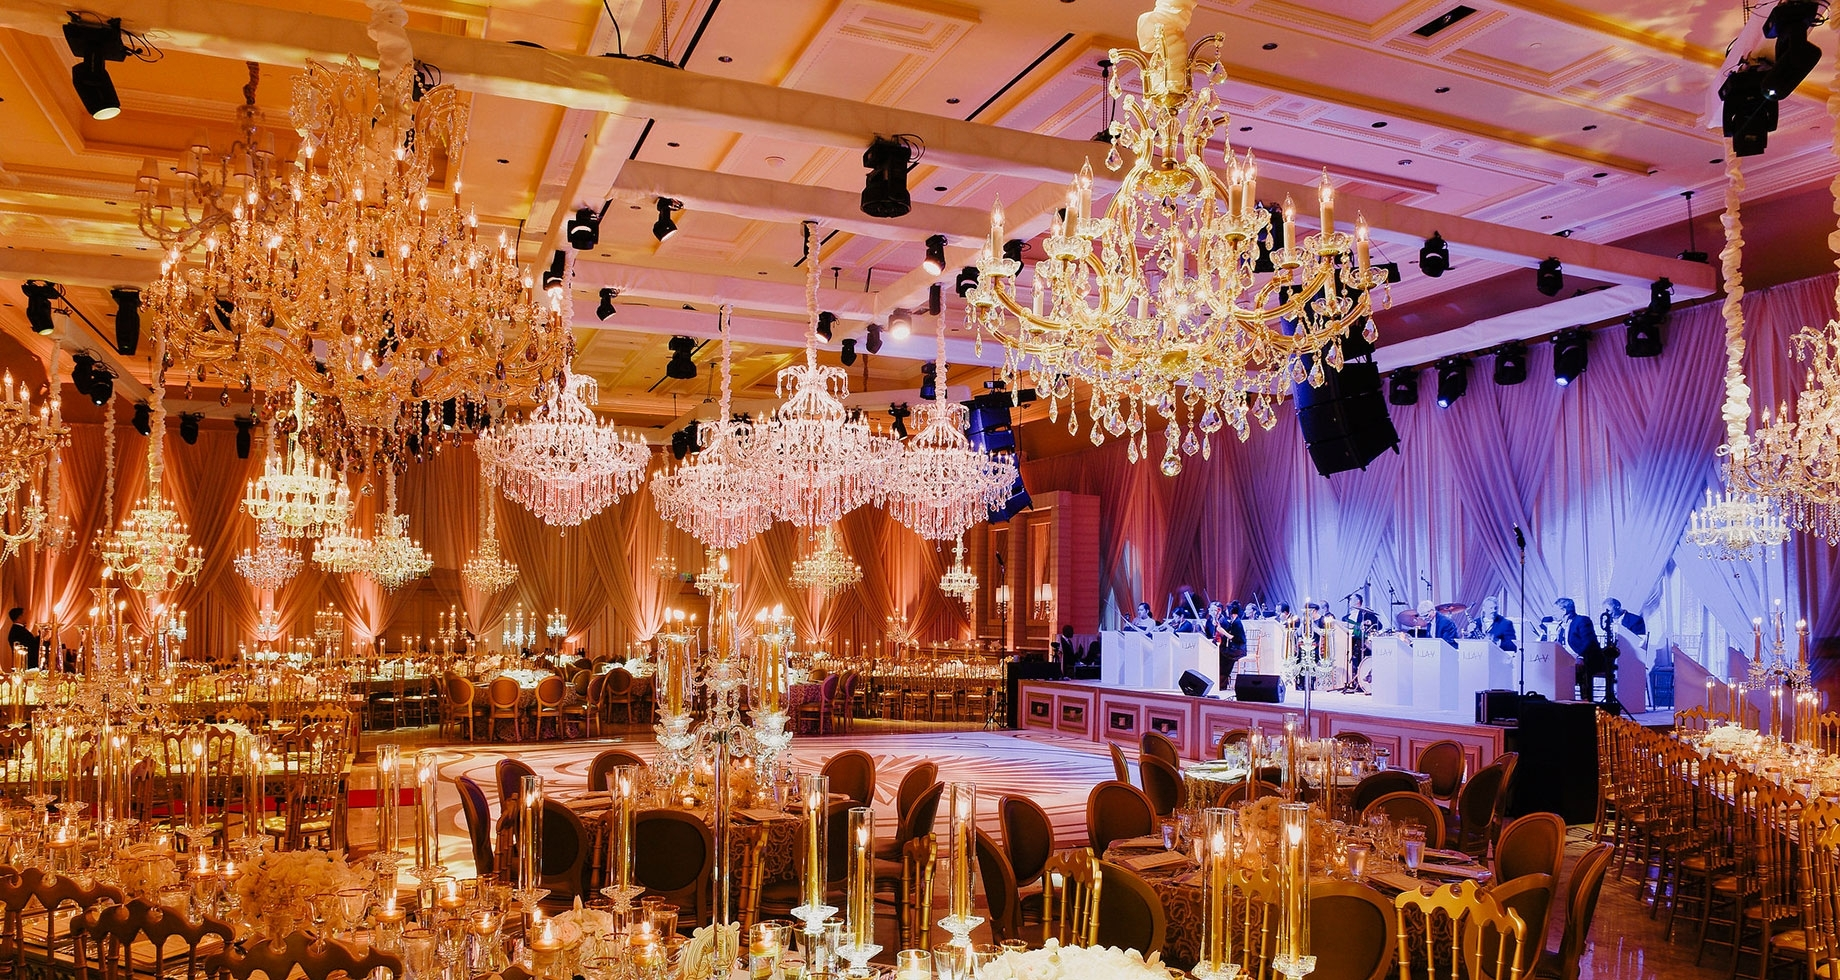 Rentals For Wedding & Events With Regard To Well Liked Ballroom Chandeliers (View 6 of 20)